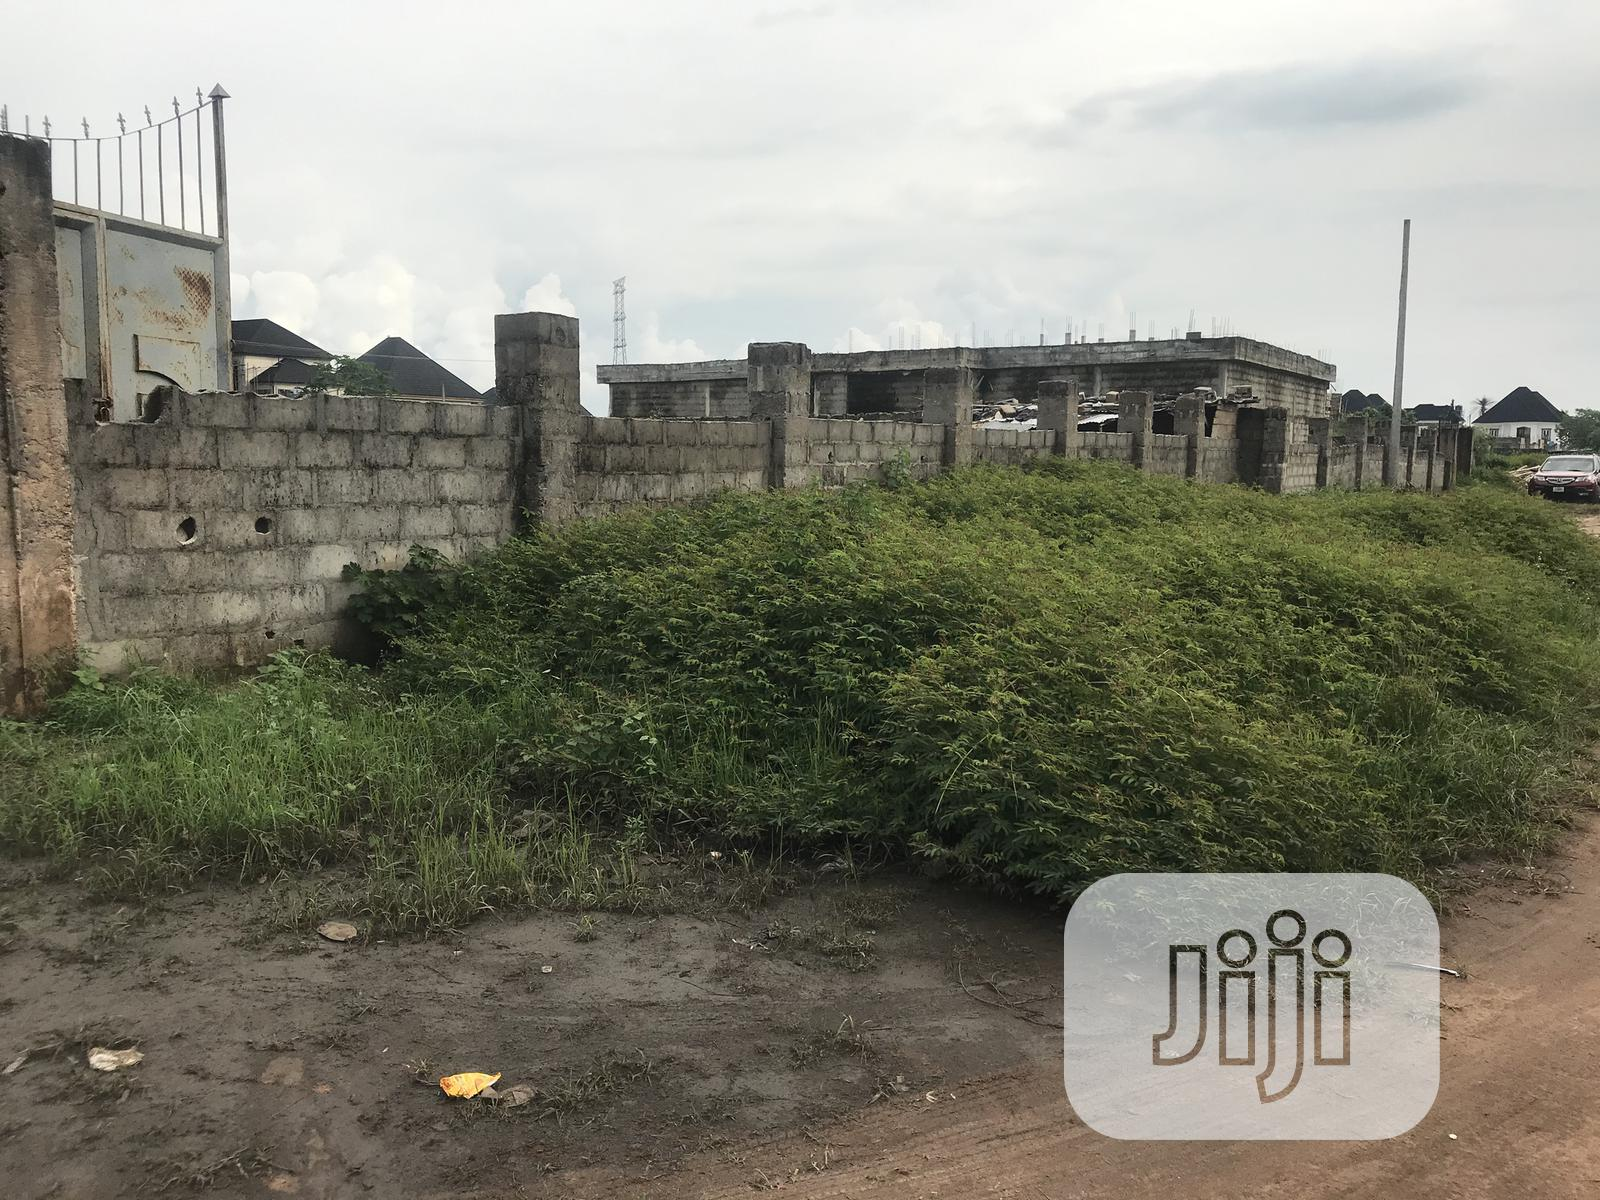 1000 Square Meters Of Land Facing A Dual Lane For Commercial | Land & Plots for Rent for sale in Owerri, Imo State, Nigeria